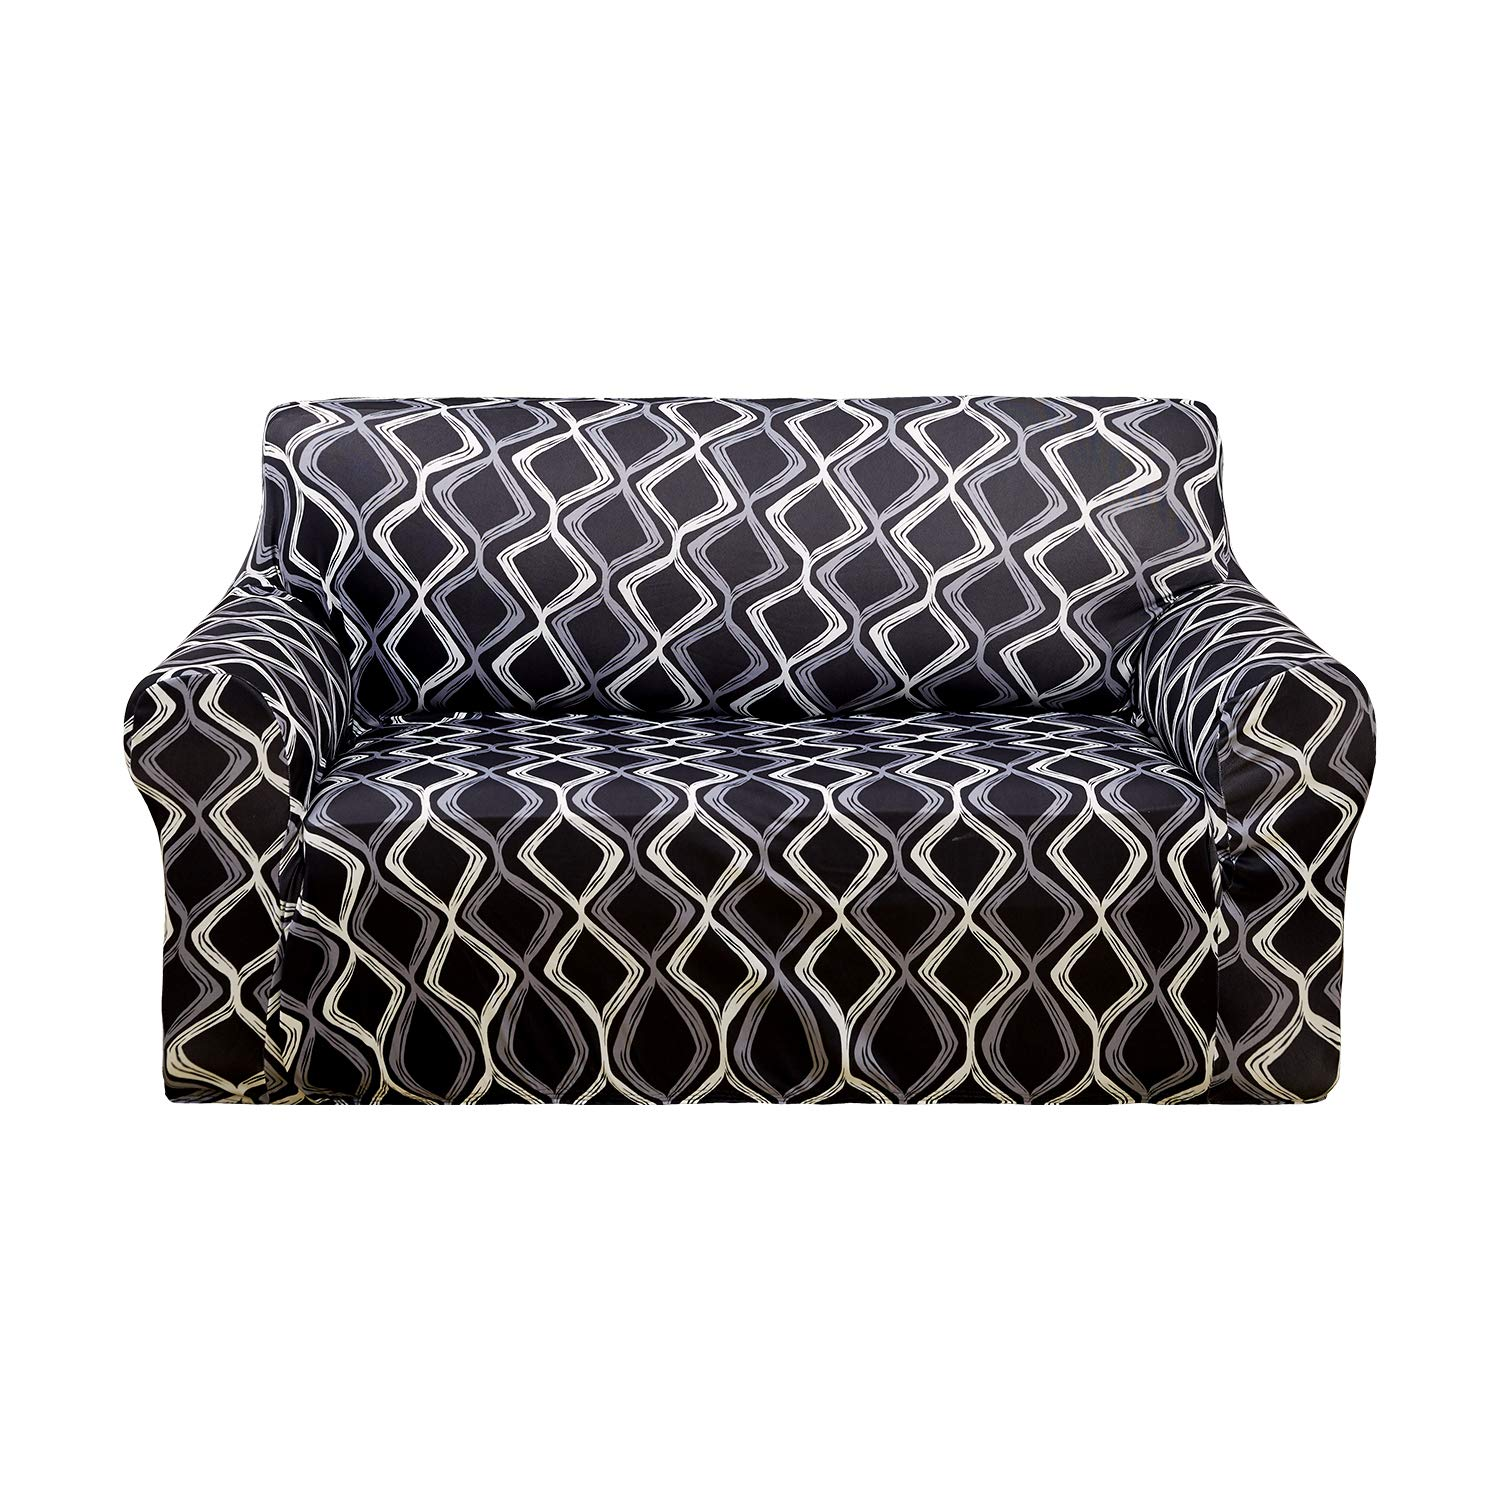 Deconovo Trellis Print Sofa Slipcover Spandex Stretch Strapless Black Sofa Cover for 1 Cushion Sofa